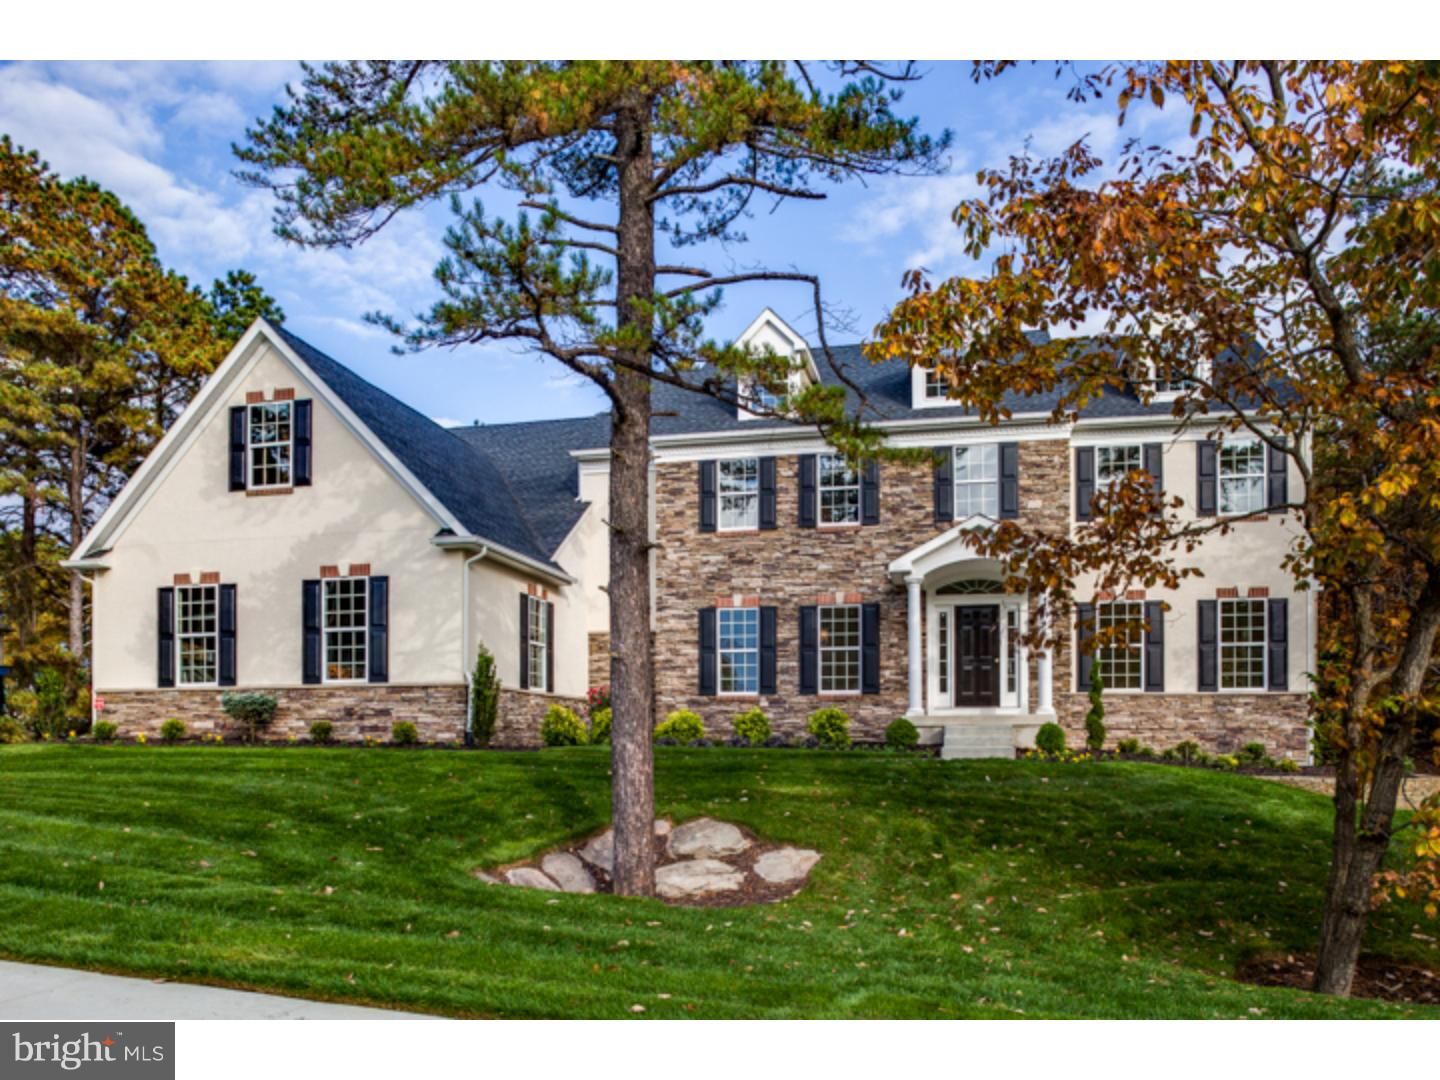 000 ZELKOVA RUN ROAD, MOORESTOWN, NJ 08057